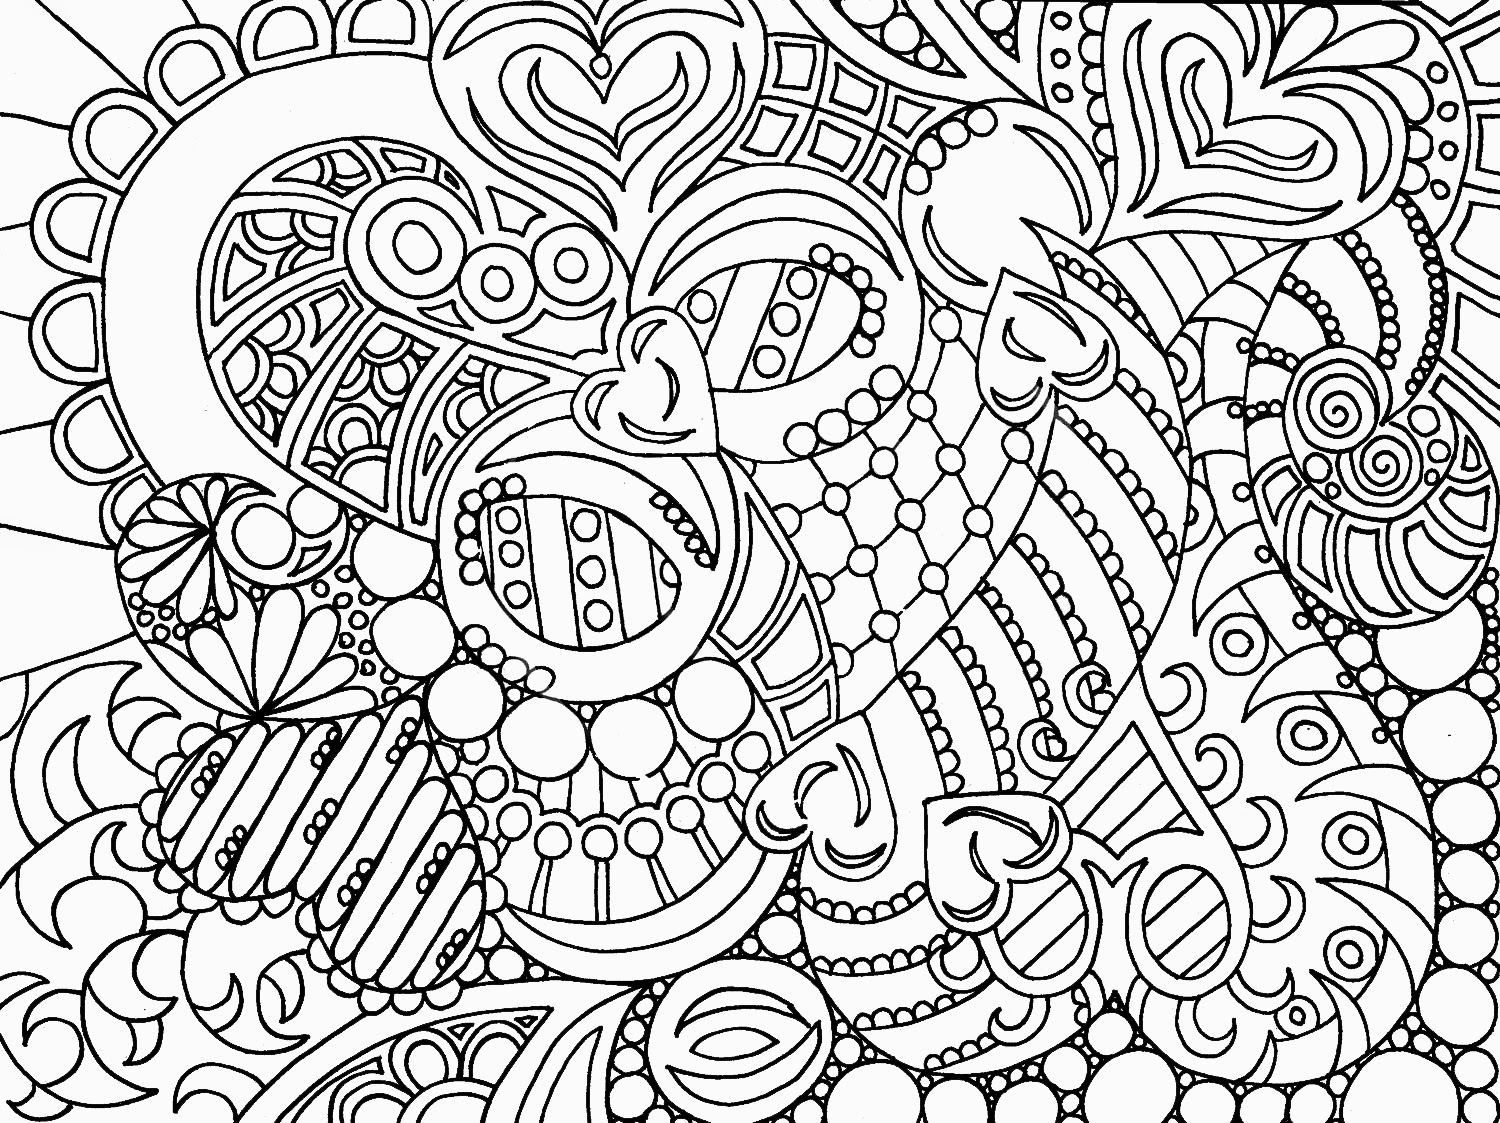 abstract coloring pages for kids free printable abstract coloring pages for adults abstract pages kids for coloring